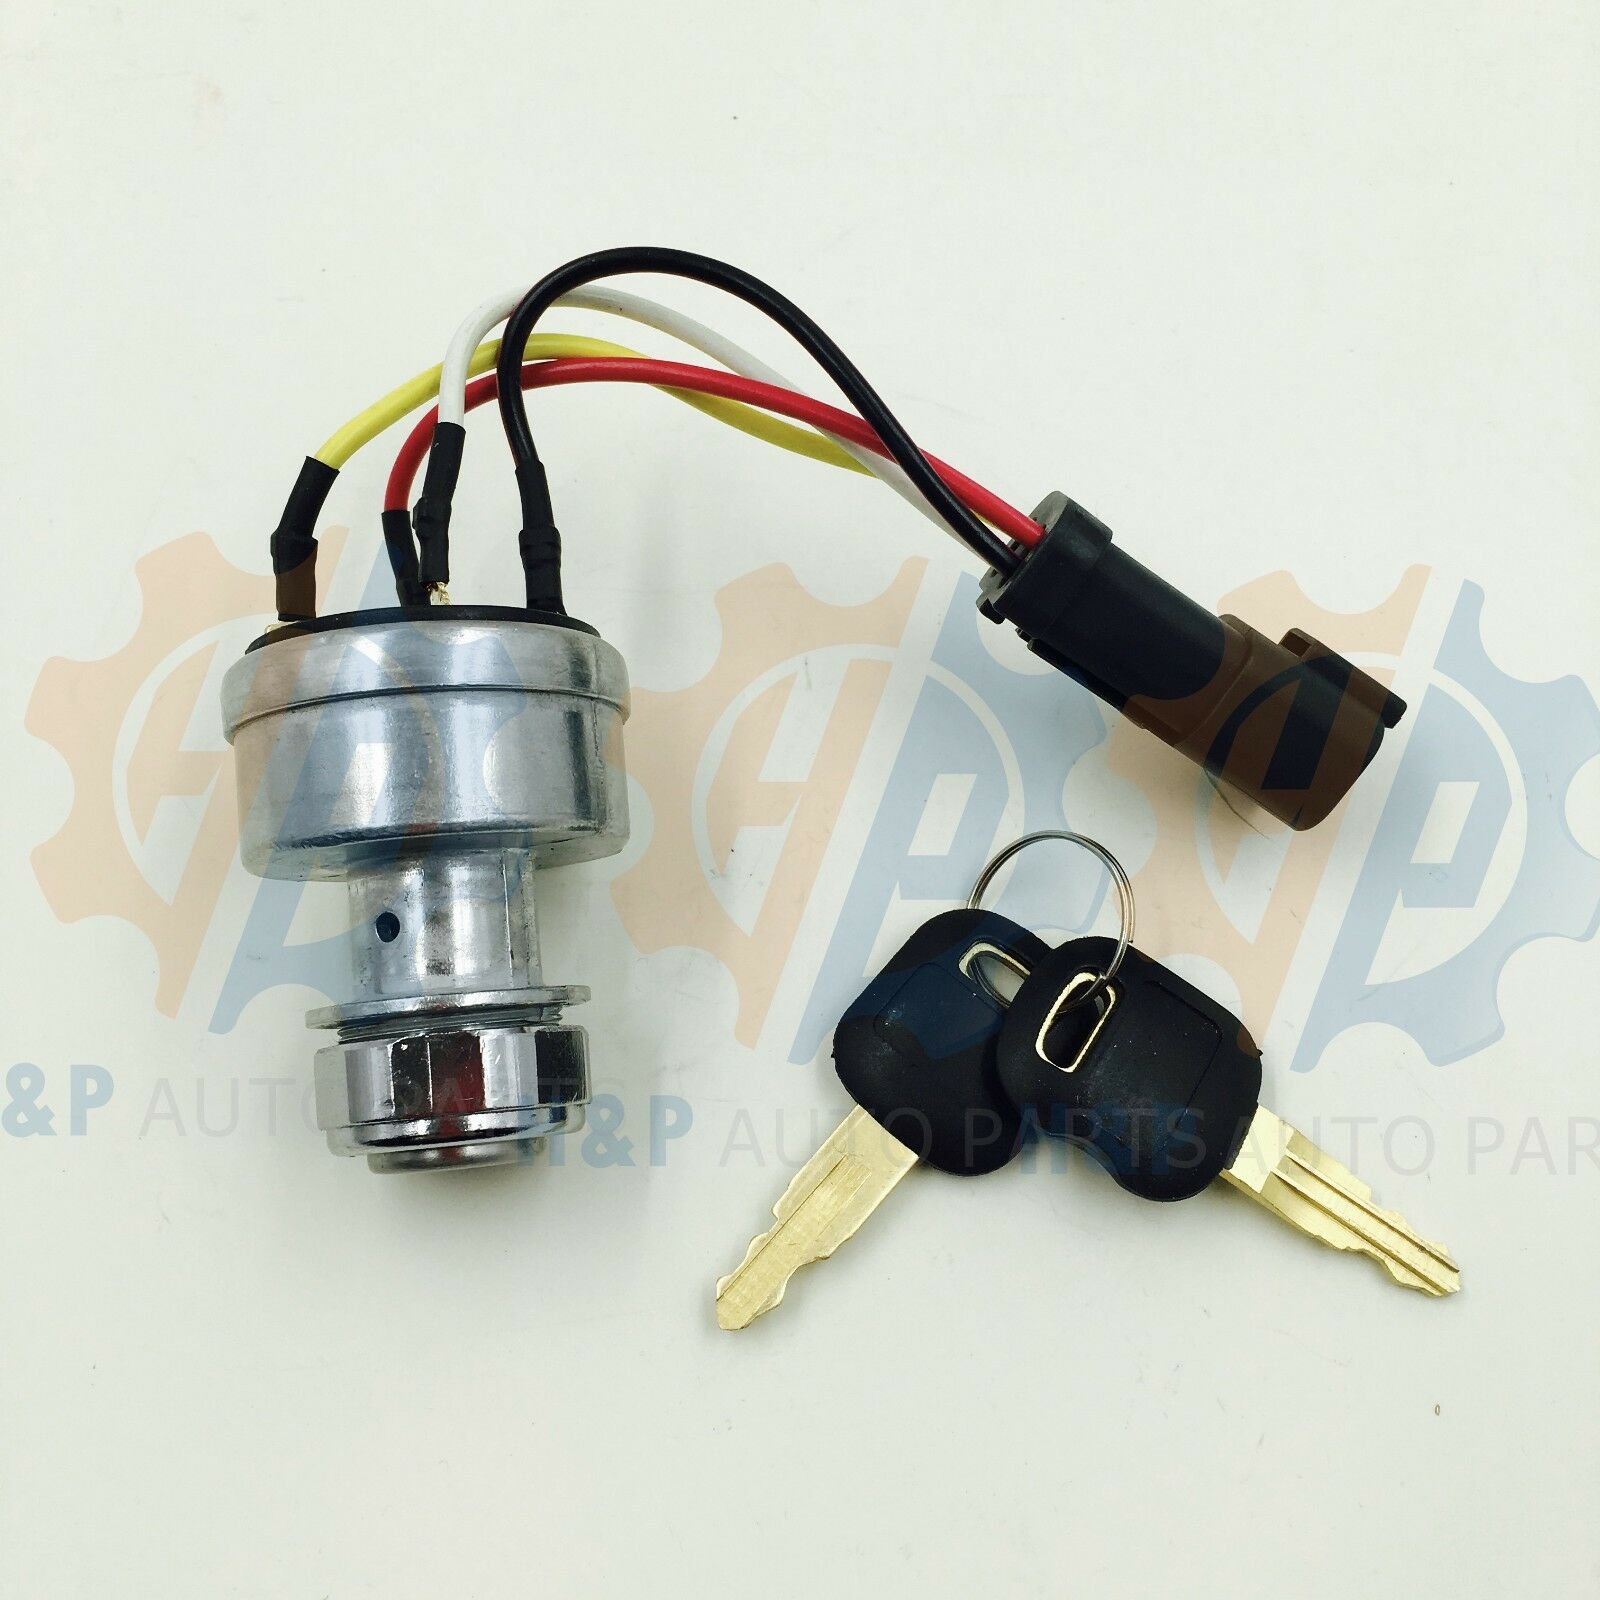 142 8858 New Ignition Switch With 2keys Fits Caterpillar 257b Cat Fork Lift Wiring Diagram 1 Of 3only 2 Available